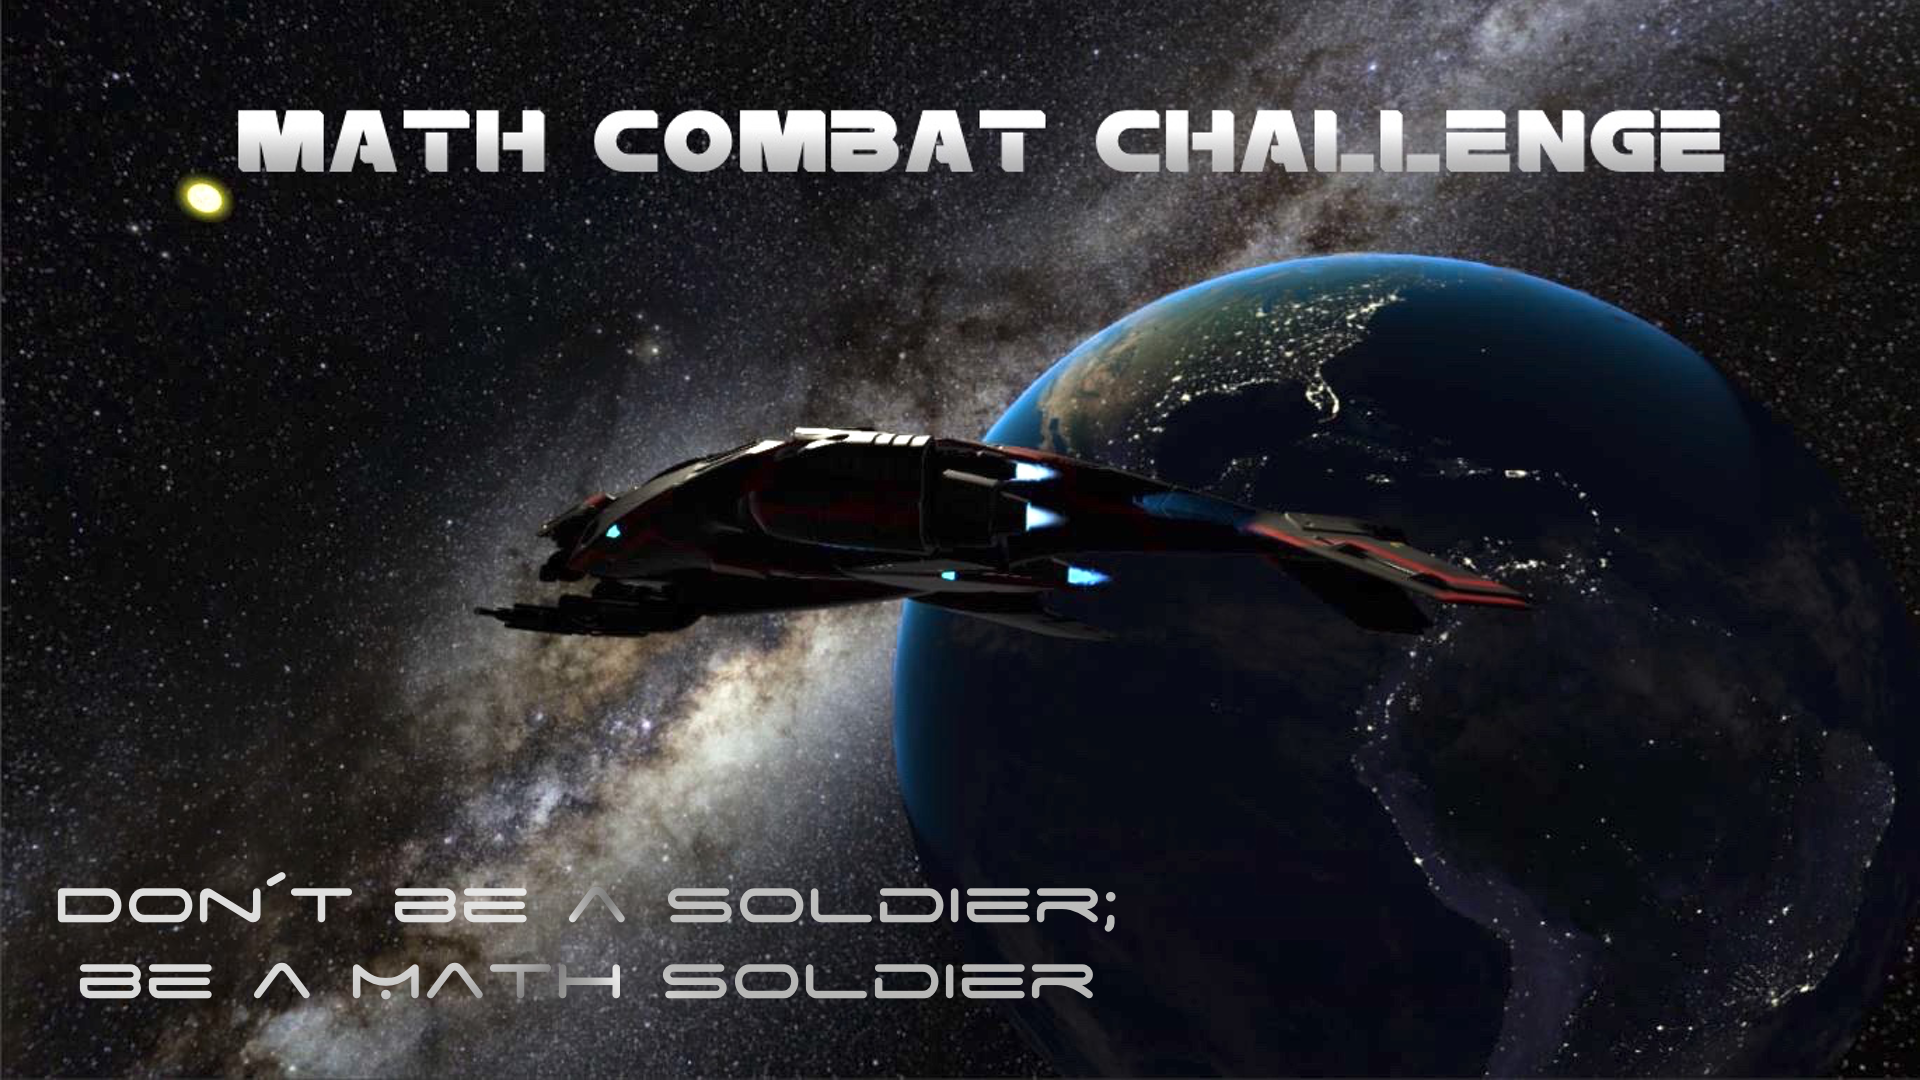 Math Combat Challenge Wallpaper